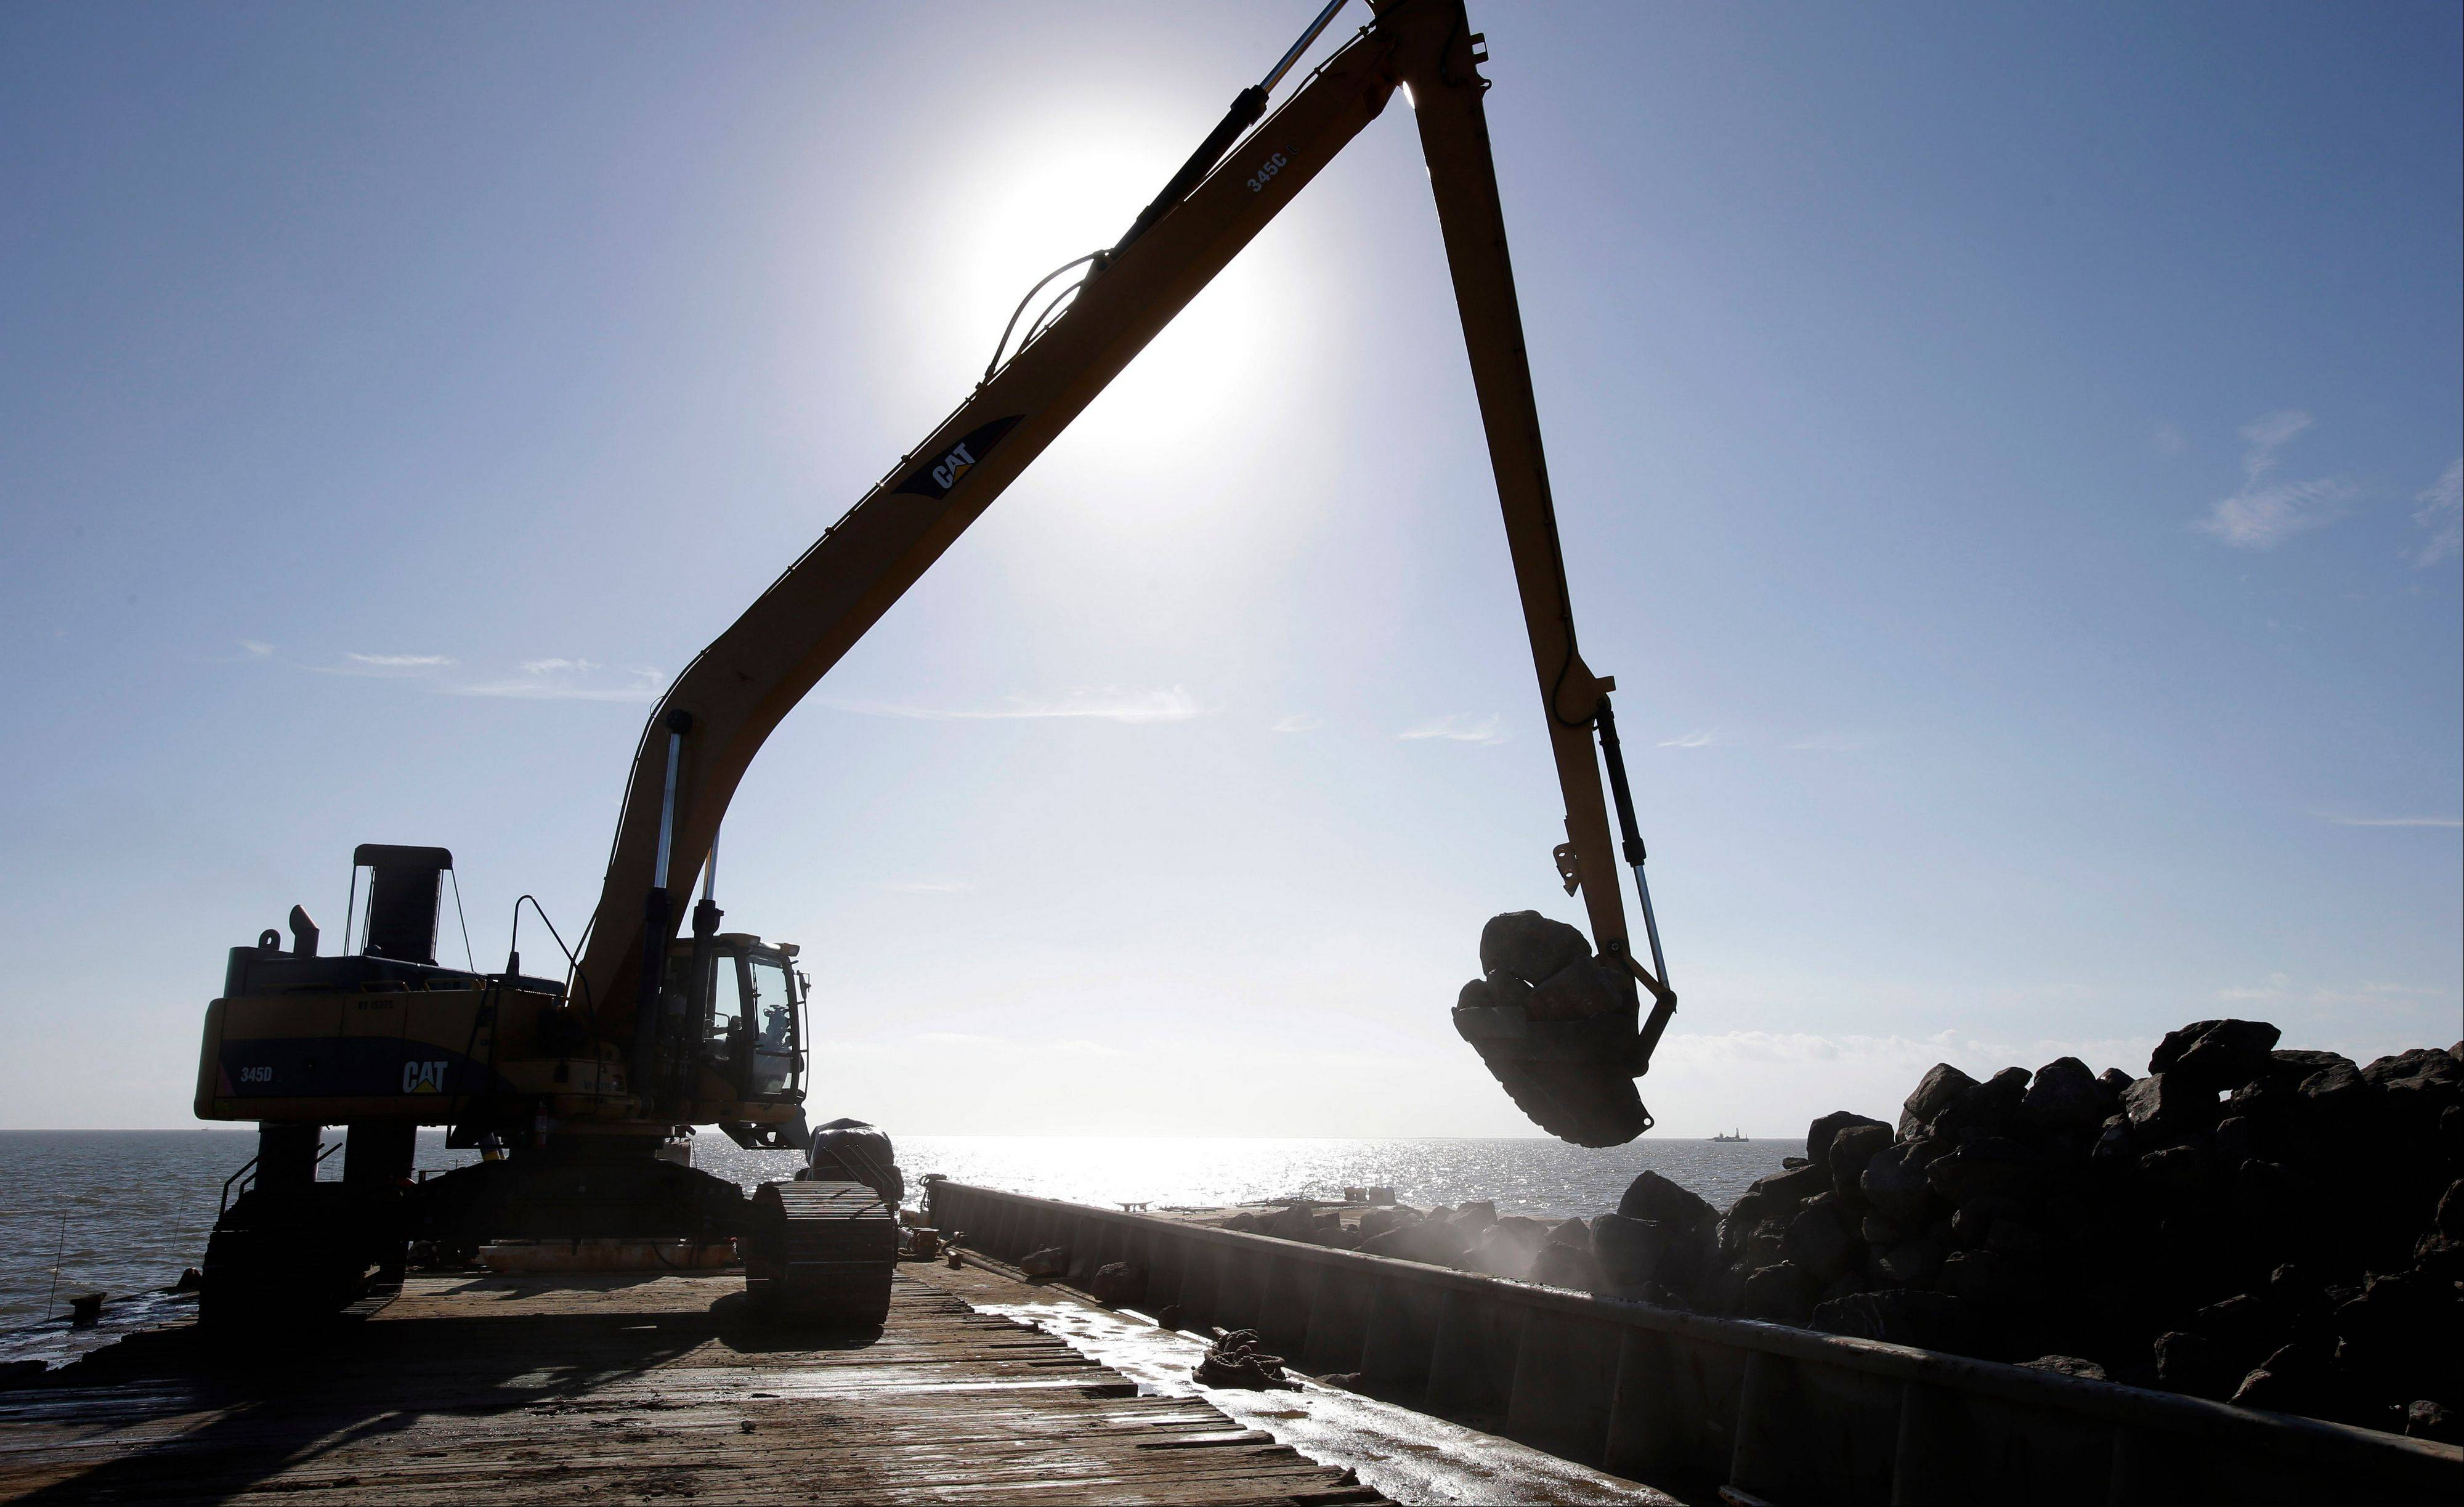 A large excavator is silhouetted as it scoops up a load of limestone boulders from a barge in the Gulf of Mexico off the Texas coast on Tuesday, Oct. 29, 2013. The huge boulders will be dropped into the water to help rebuild a reef that once filled some 400 acres and now barely exists.